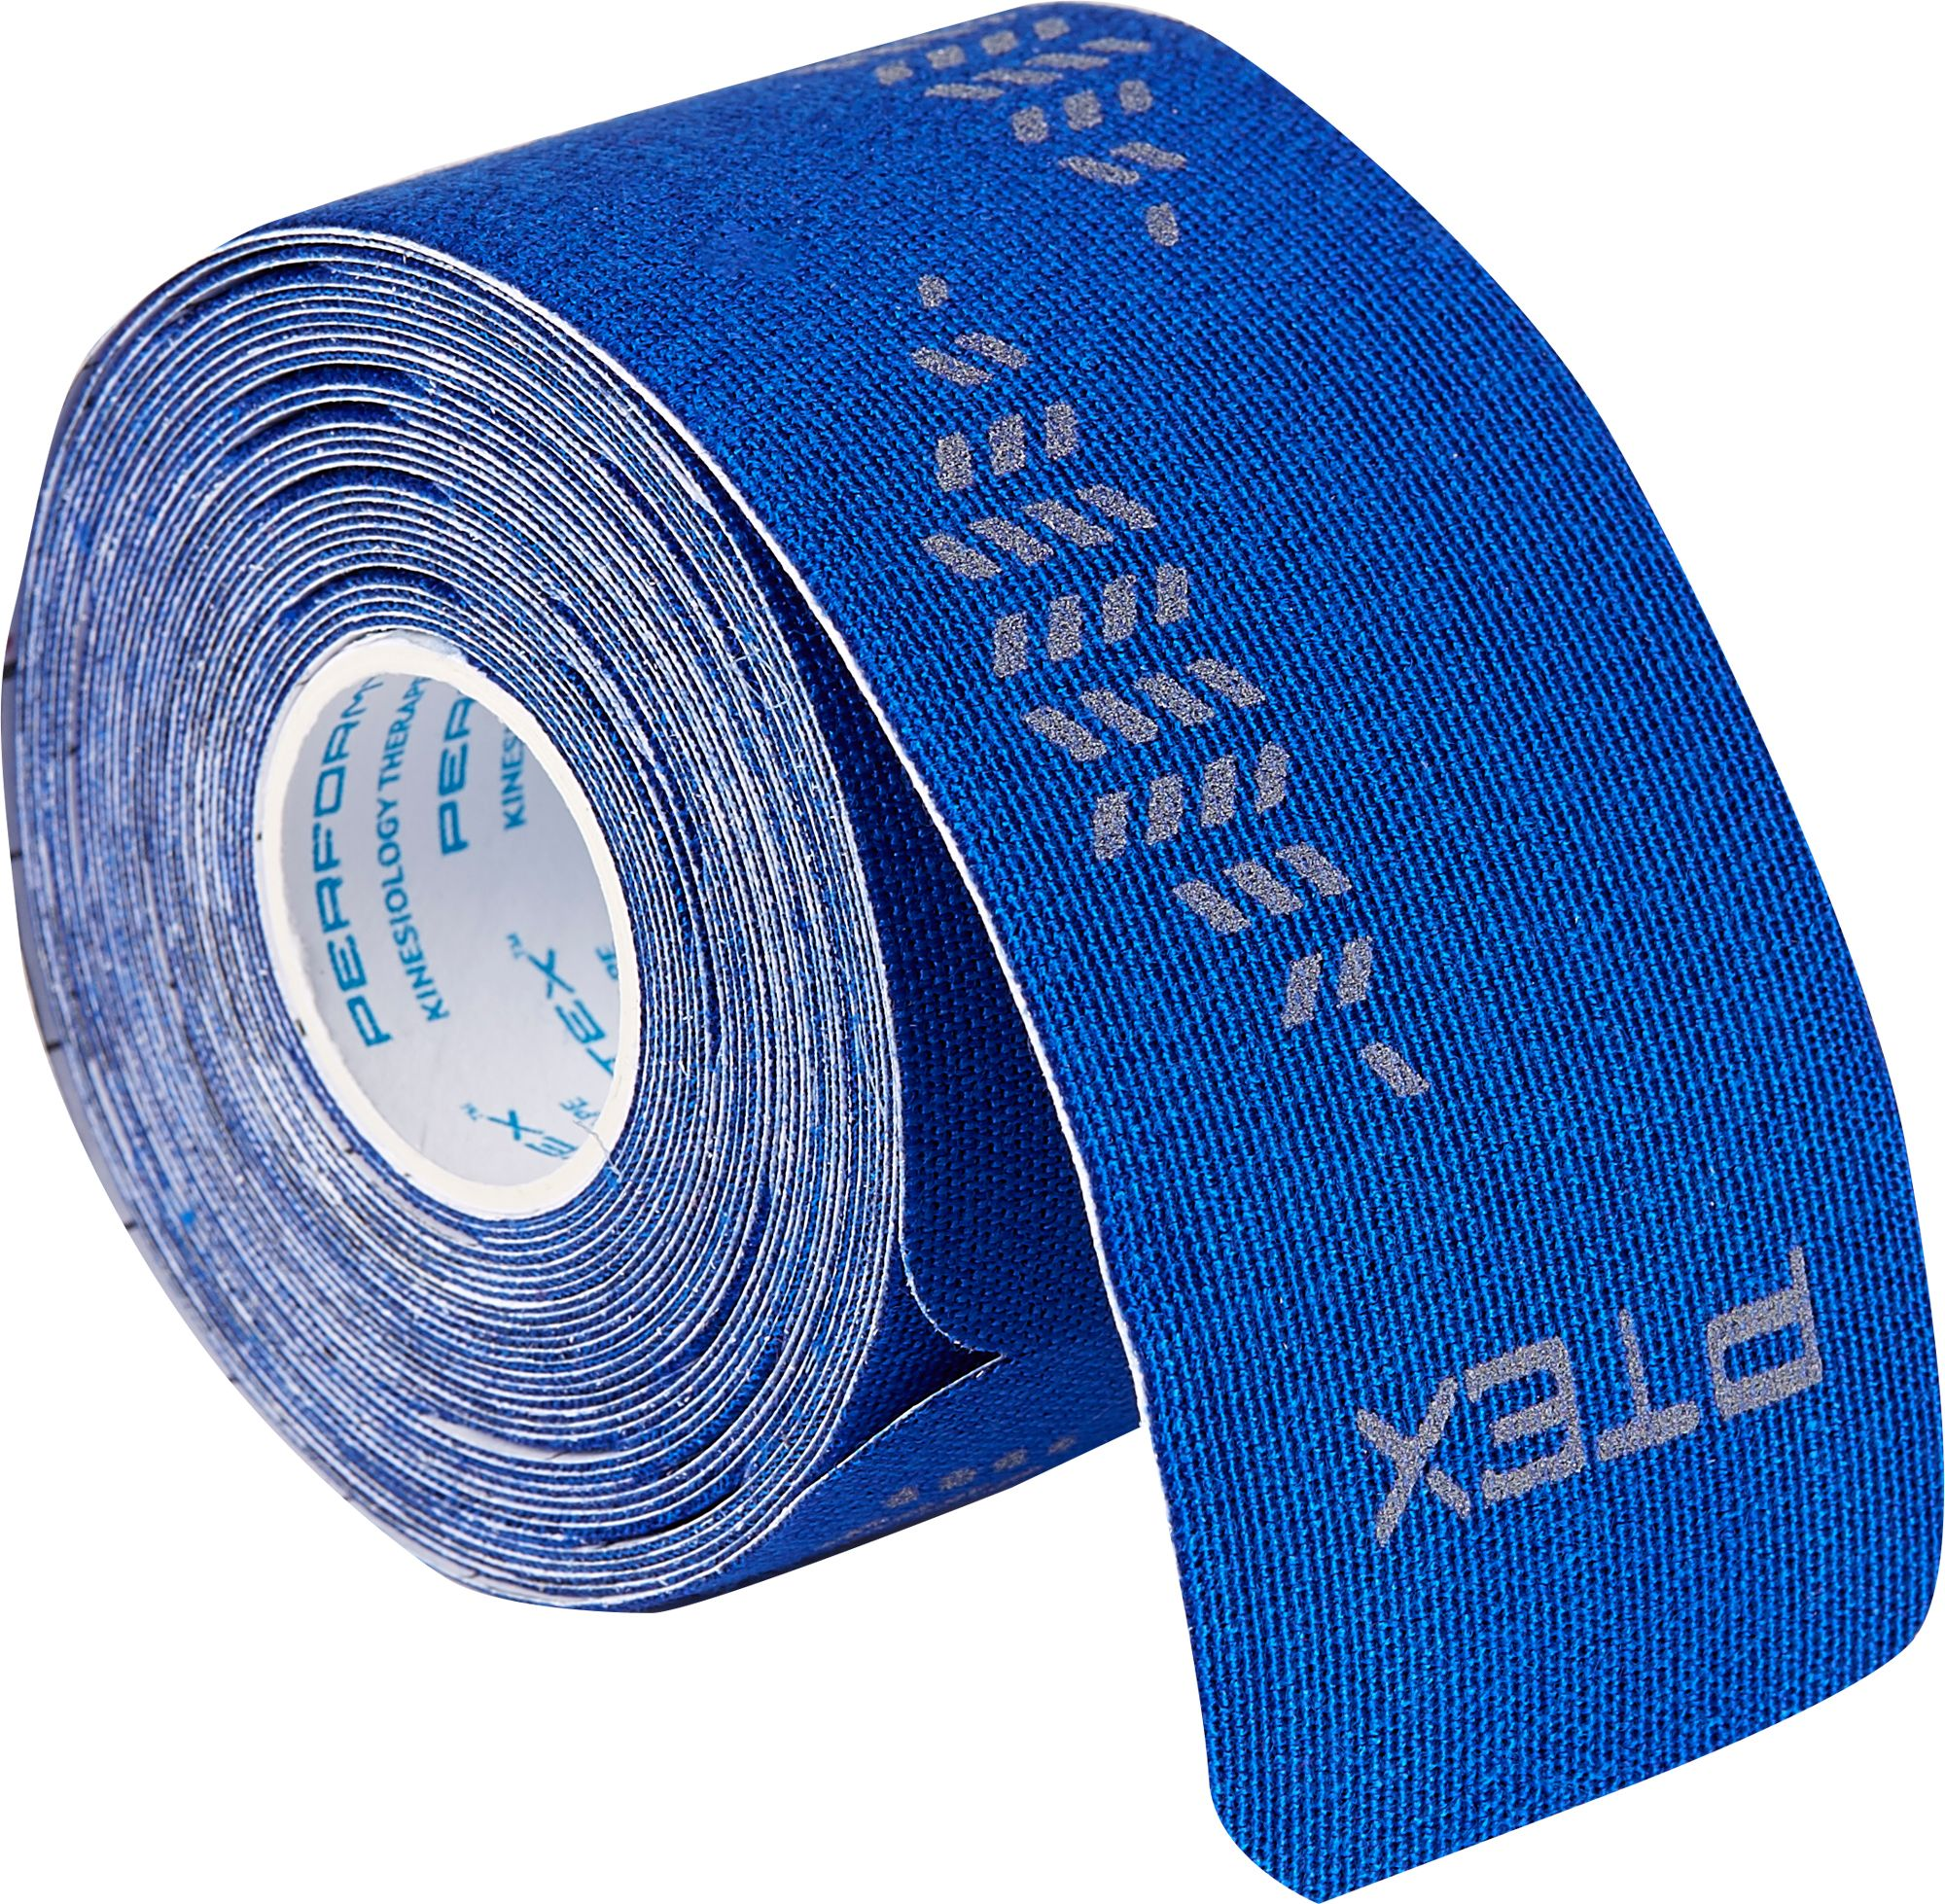 PTEX PRO Kinesiology Tape DICKS Sporting Goods